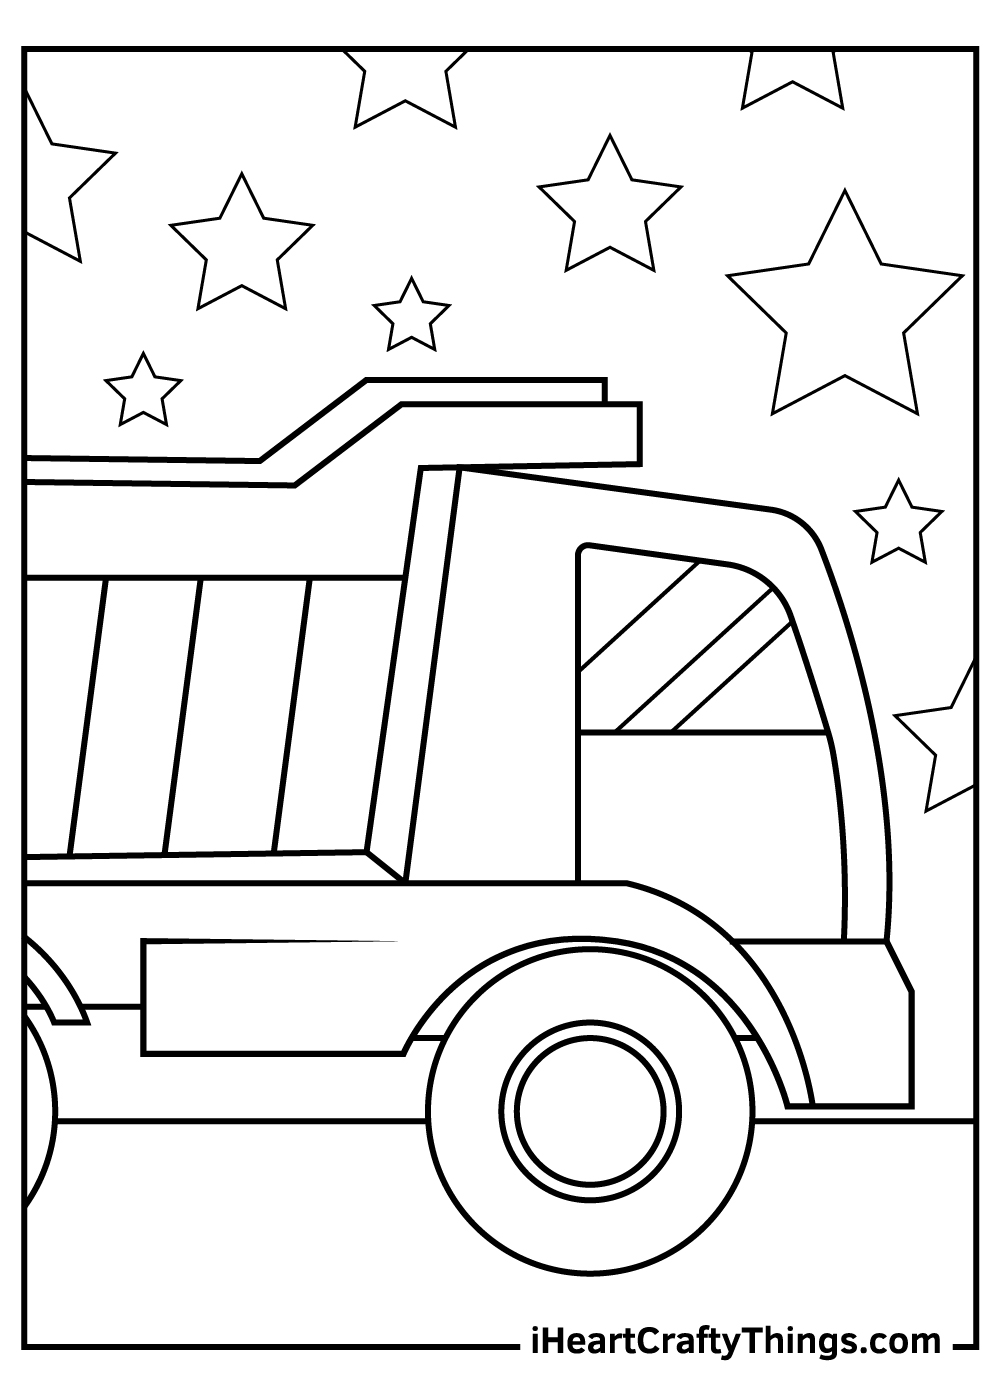 free monster truck coloring pagesdownload pdf